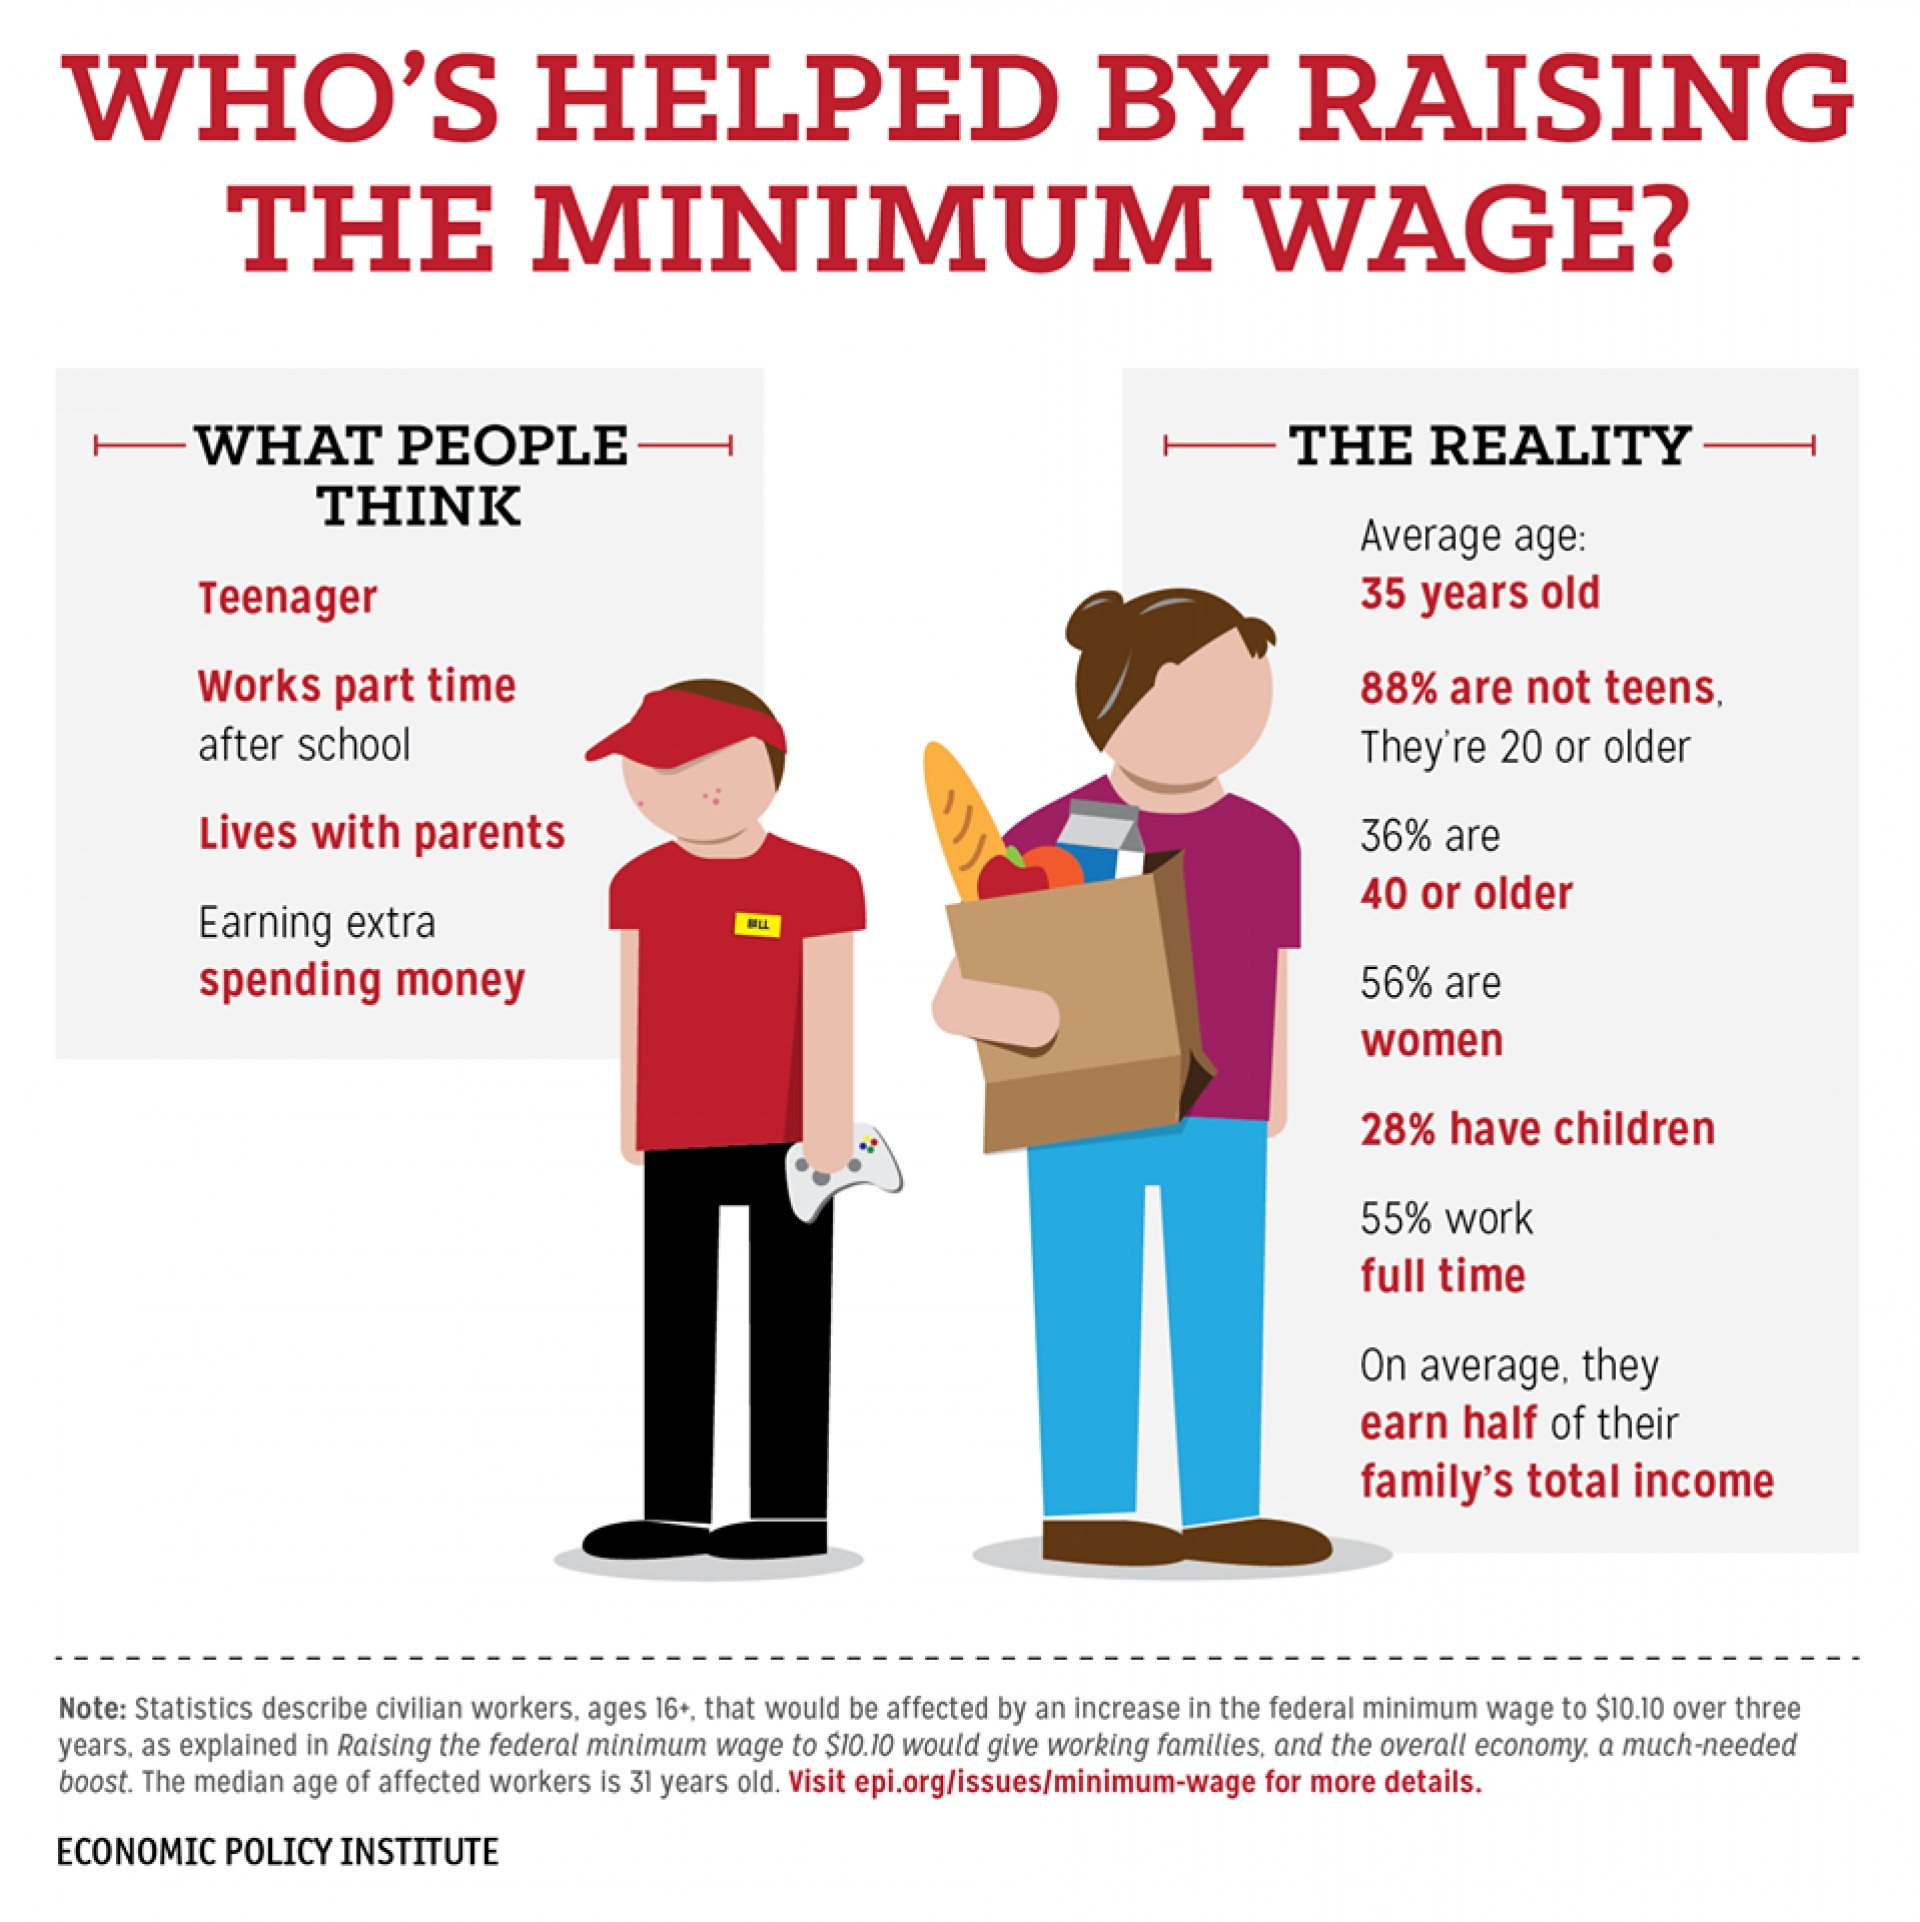 017 Should Minimum Wage Raised Essay Reasons Even Conservatives Support Raisin Argumentative Raising Increase Example Unusual Why Be We Raise Not 1920